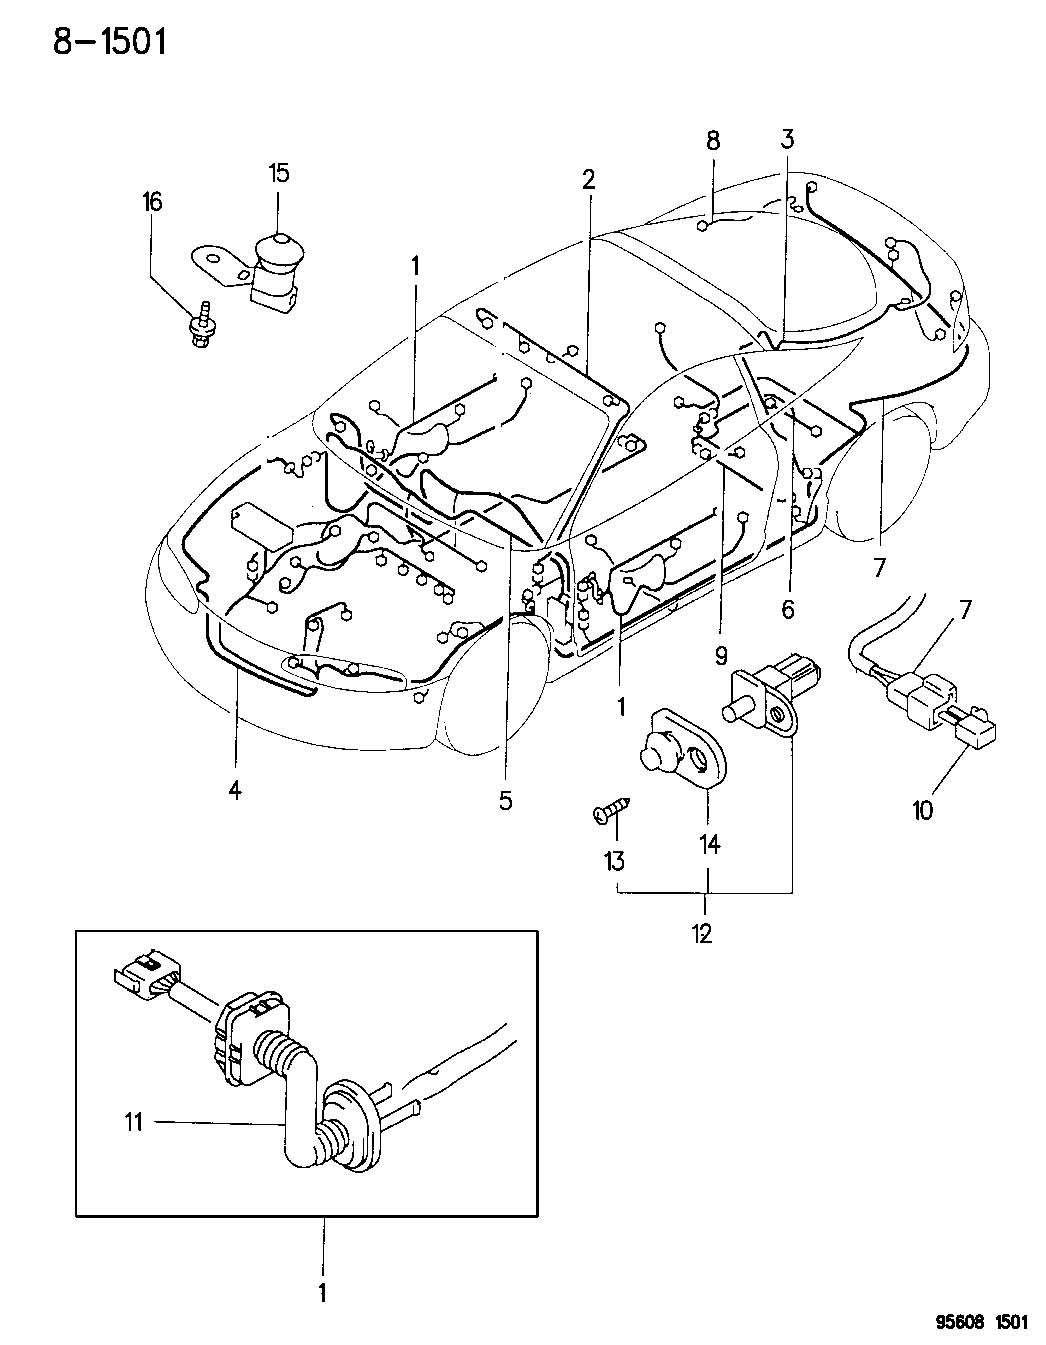 94 Toyota T100 Fuse Box Diagram further Hammond B3 Organ Schematic in addition 29api Need Wiring Diagram Dodge Dakota 1995 Infinity furthermore 2017 Jeep Wrangler Unlimited Stereo Wiring Diagram furthermore Car Audio Powered Crossover Wiring Diagrams. on chrysler infinity speaker wiring diagram